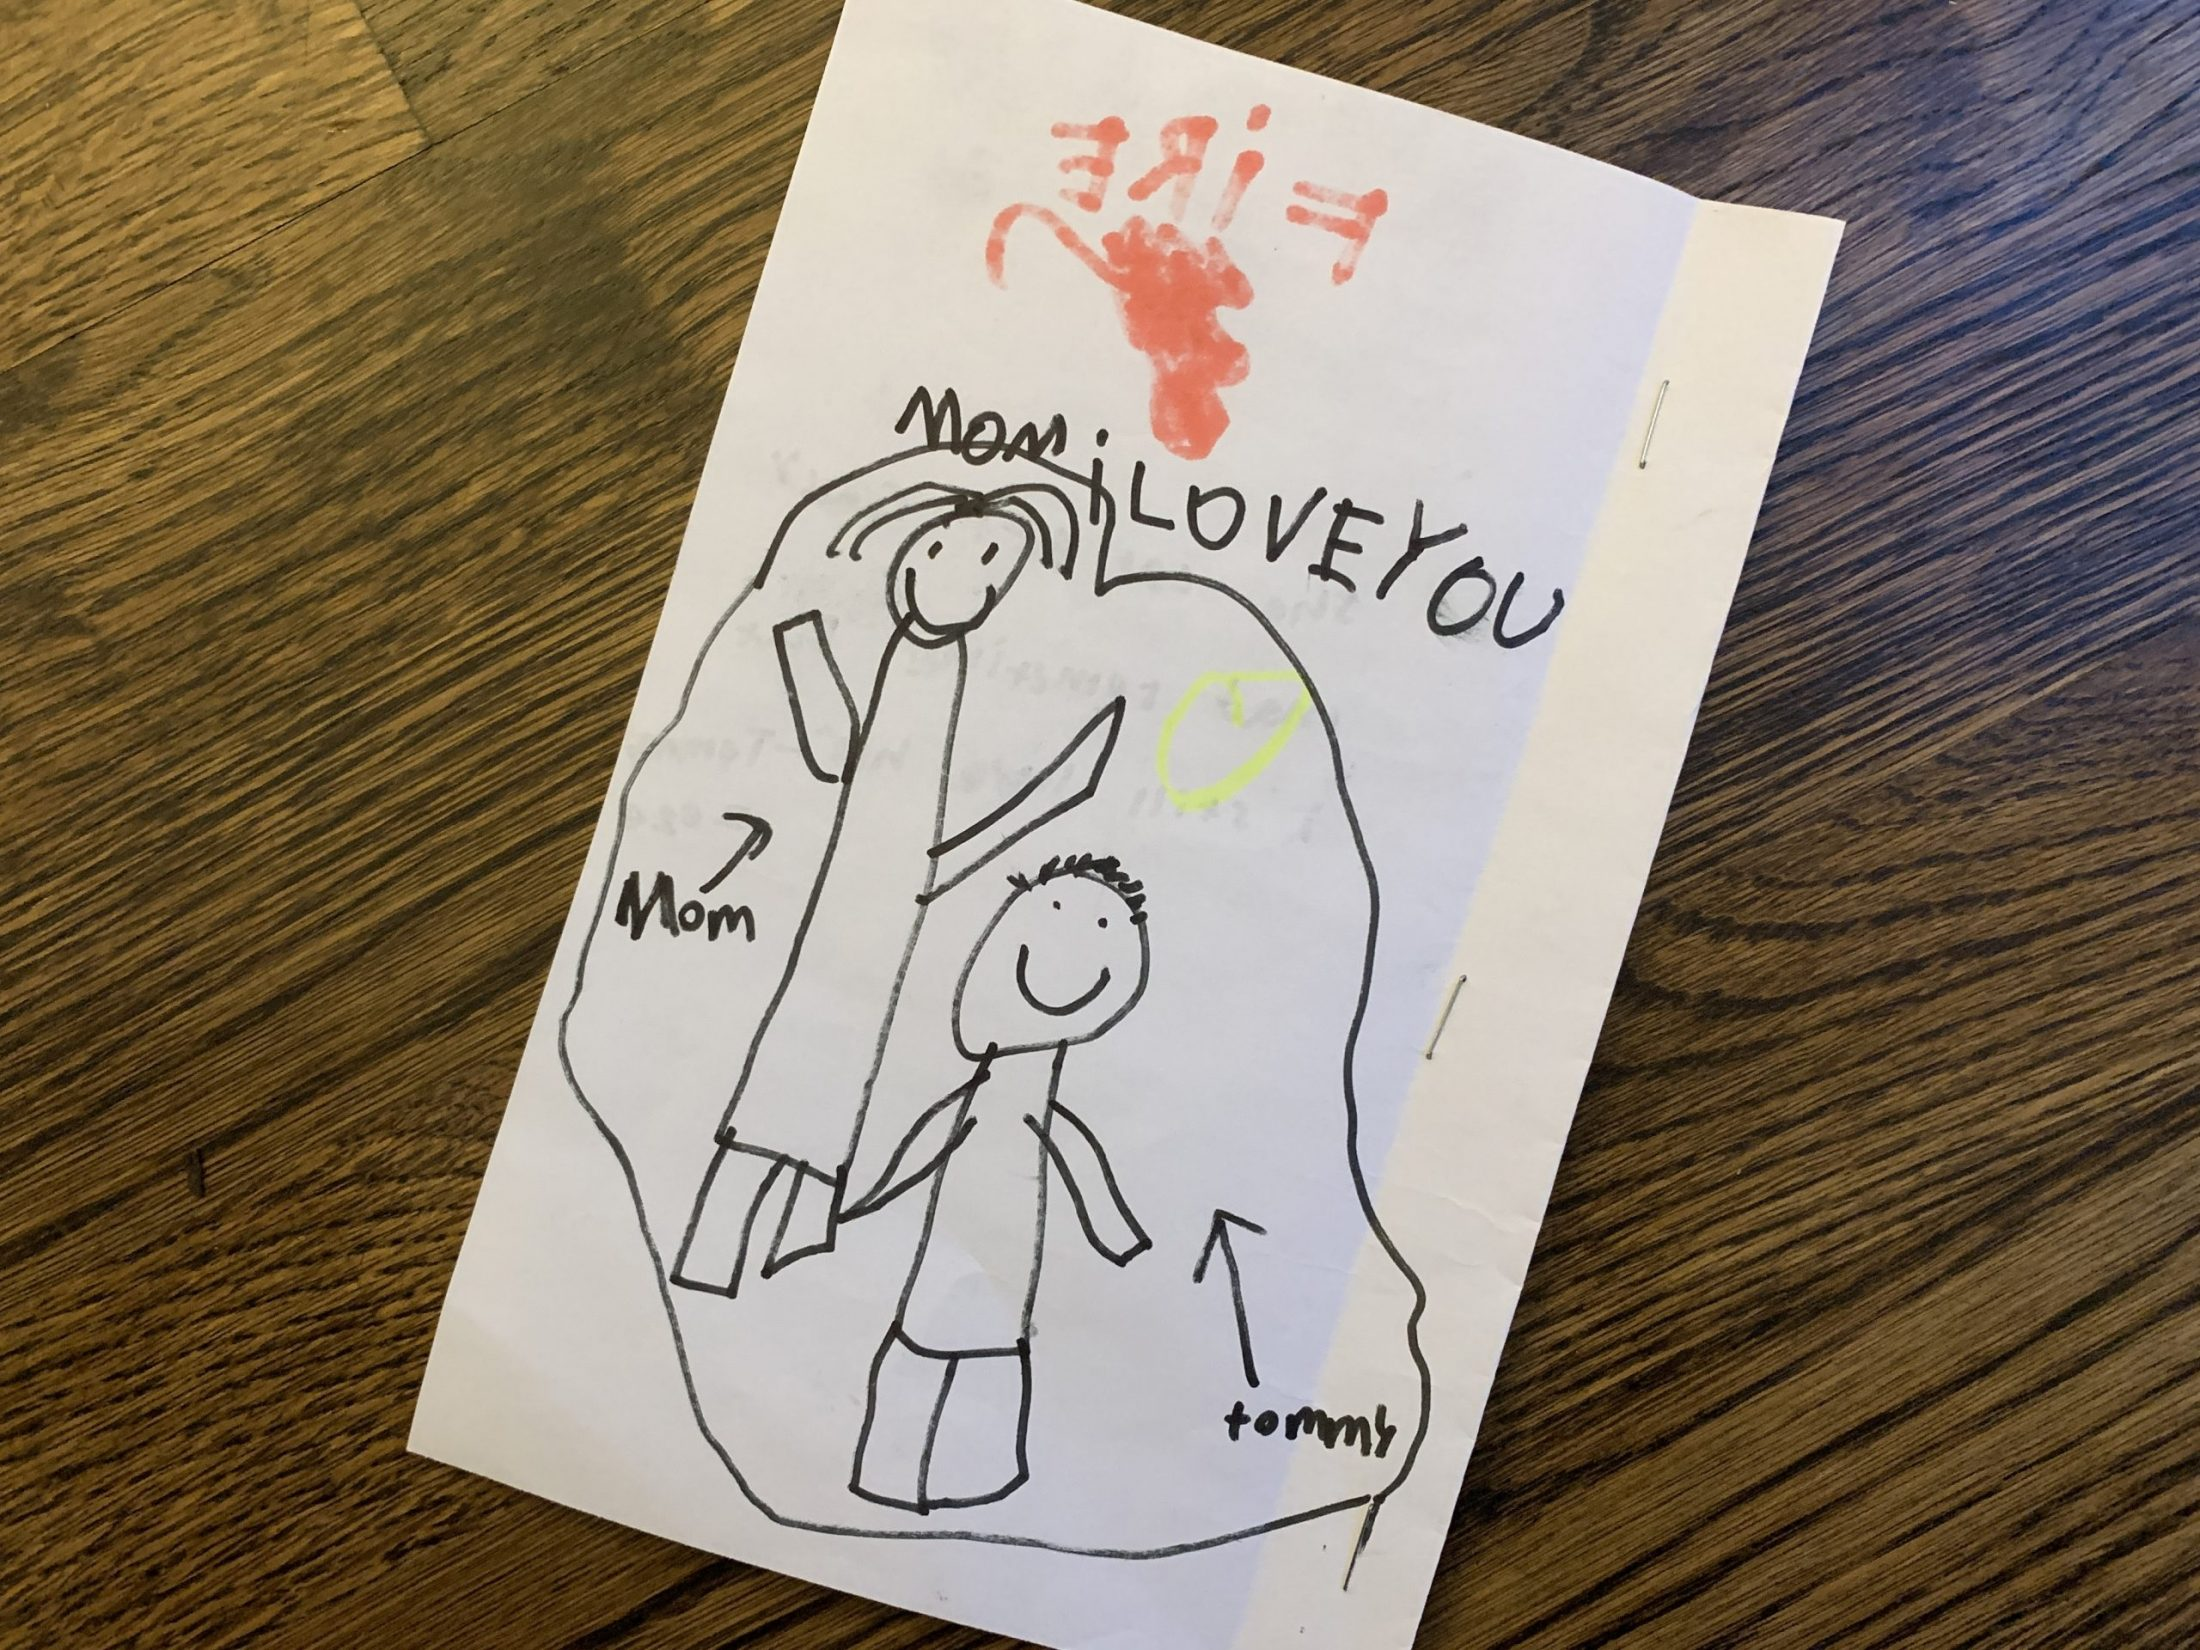 Tommy's drawing of mom for DC widow blog writer Marjorie Brimley